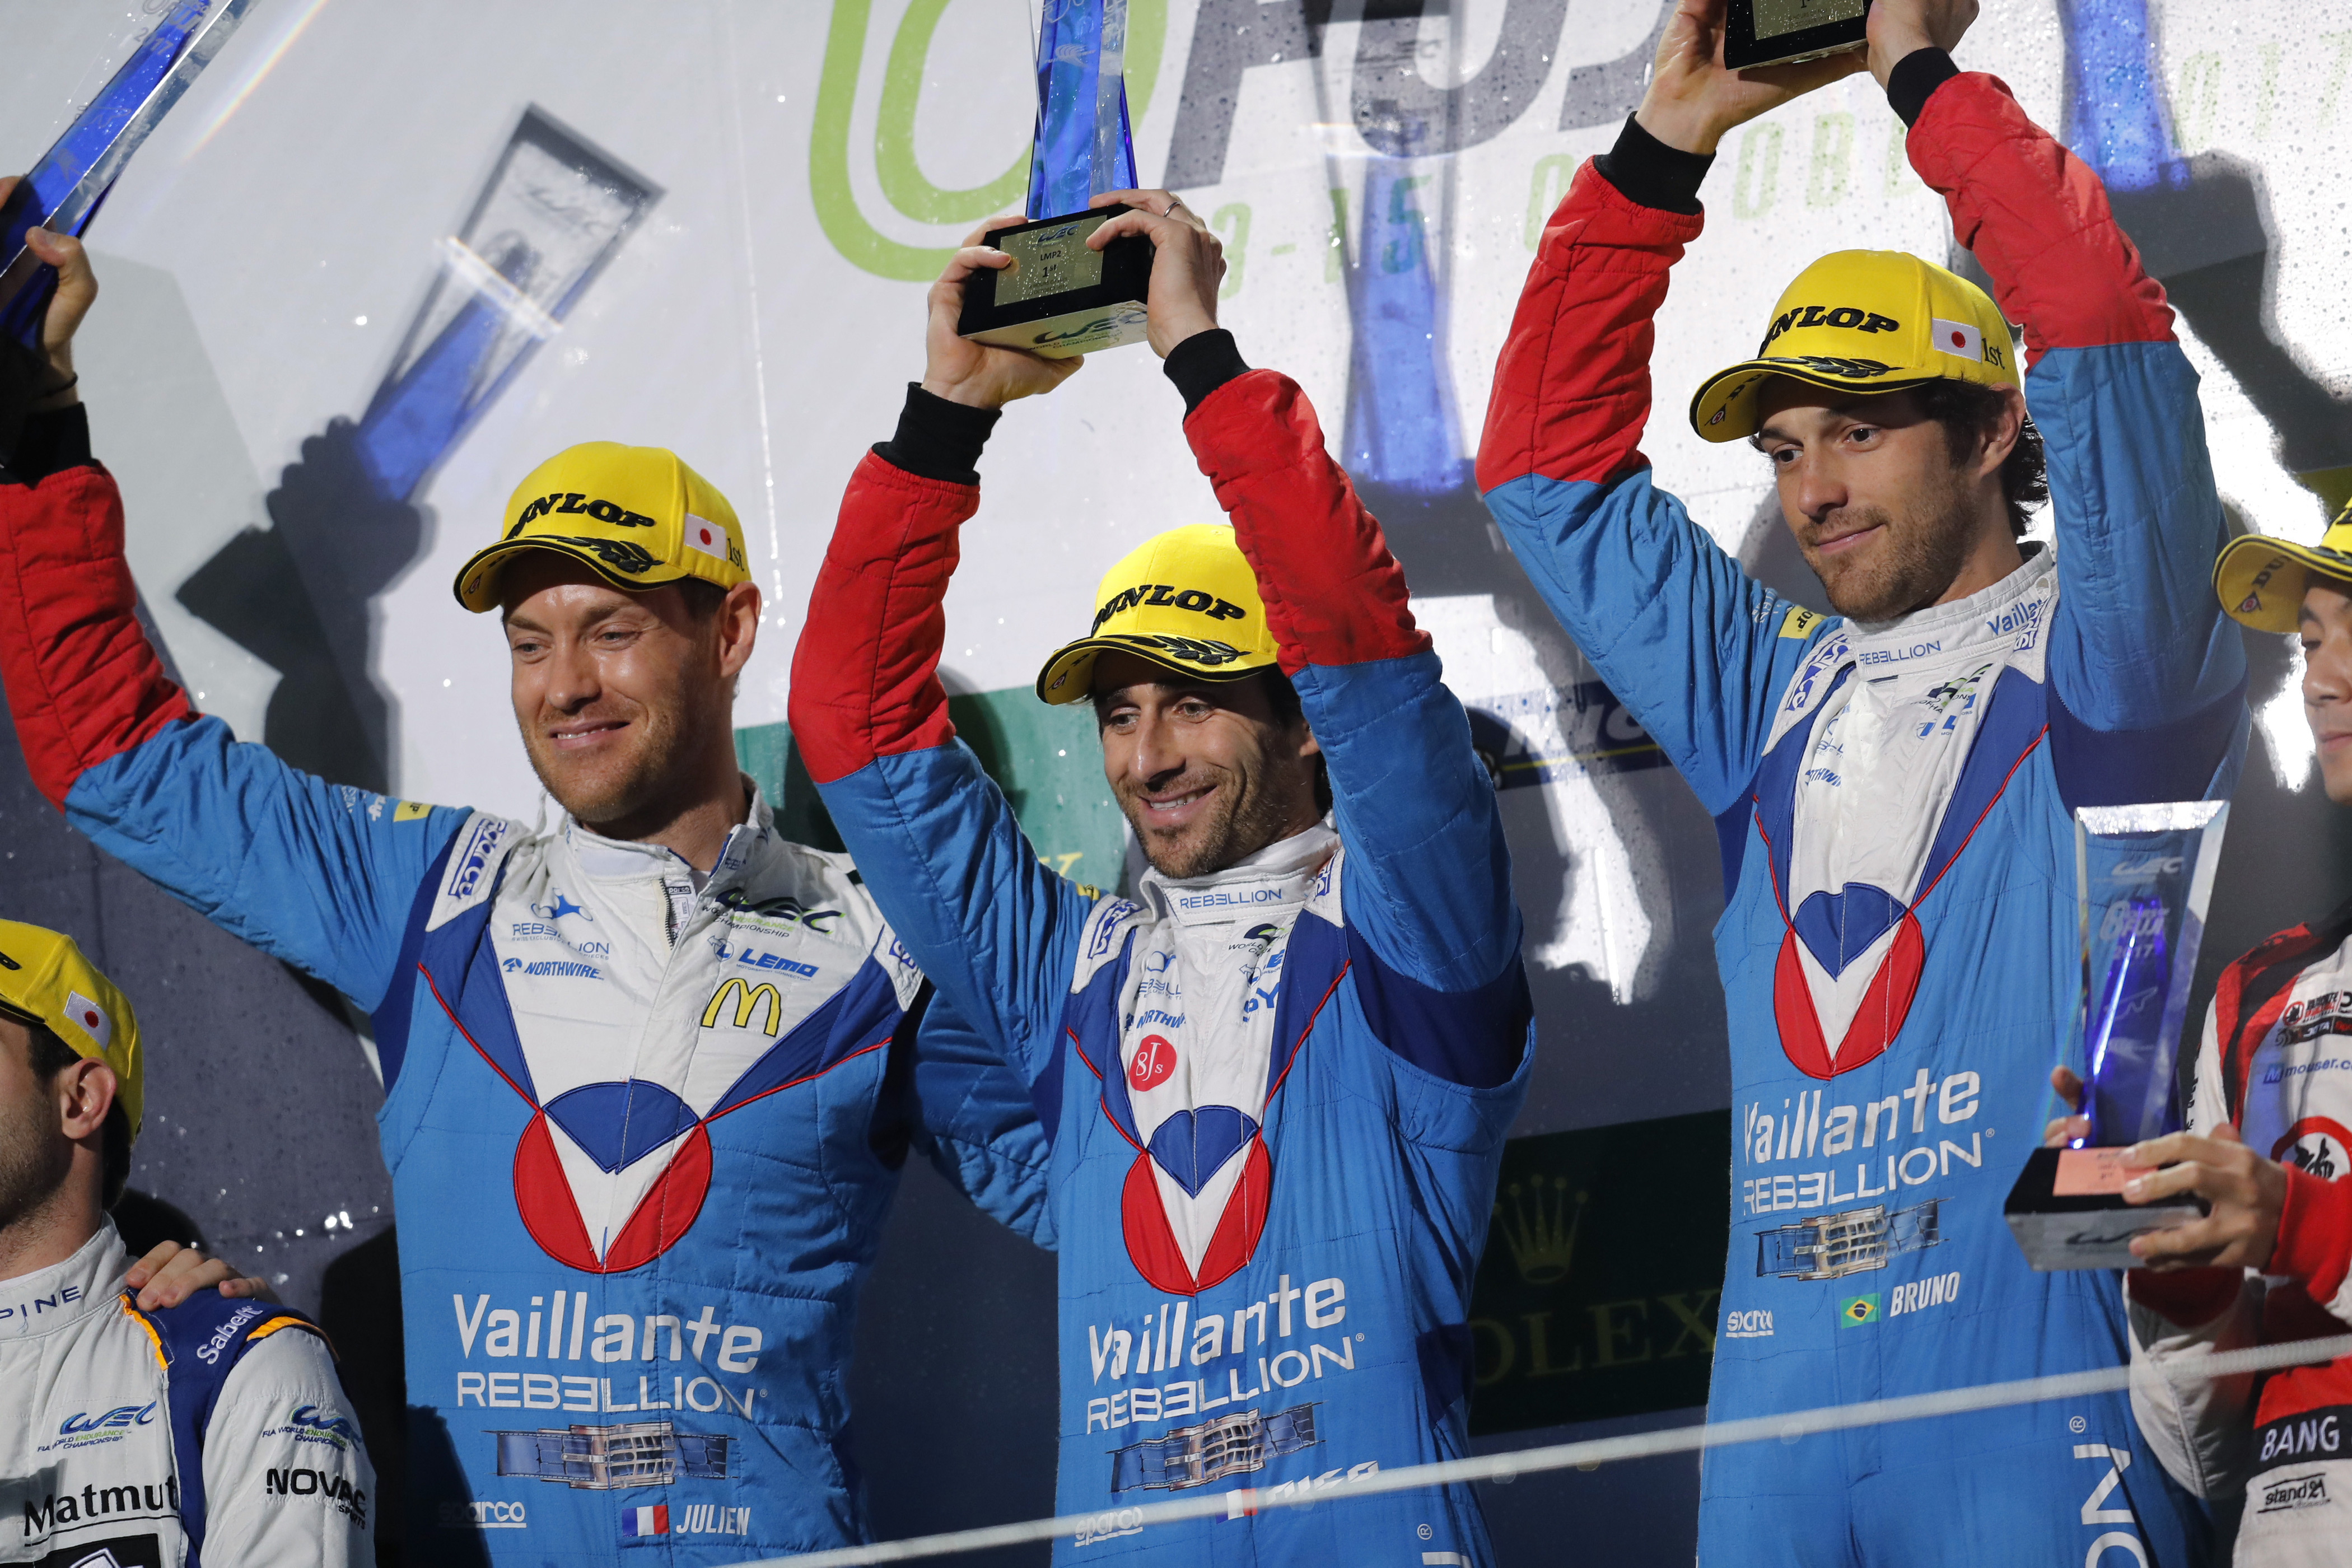 Mouser-Backed Vaillante Rebellion Car Victorious at Fuji